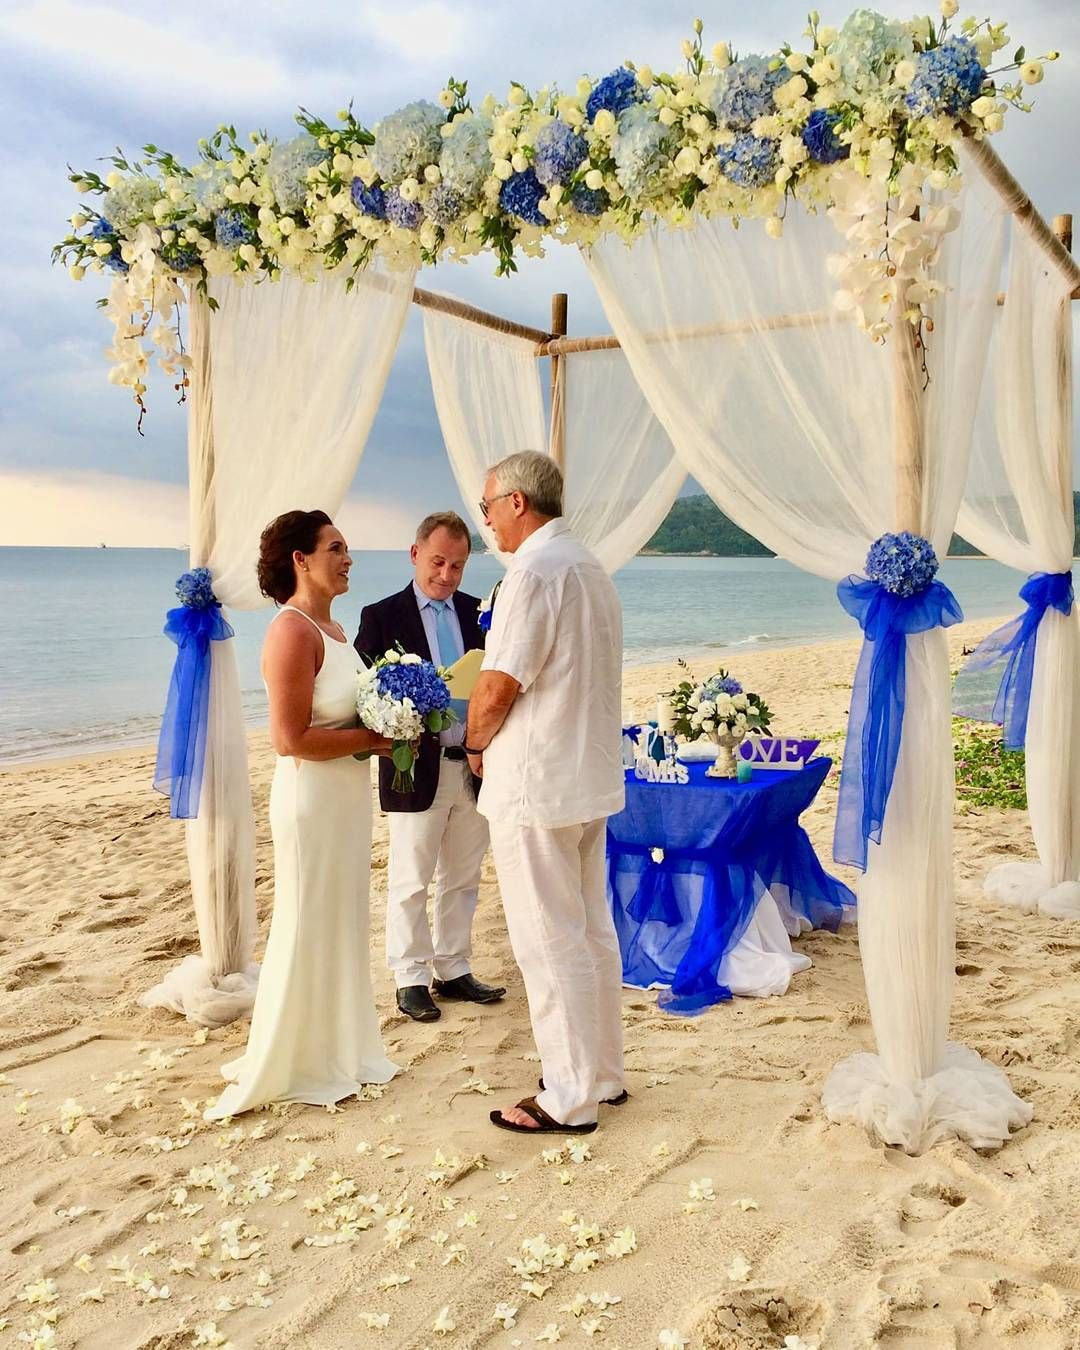 Belongil Beach Wedding Ceremony: Beach Wedding Ceremony For Betty & Ady 31st December 2017